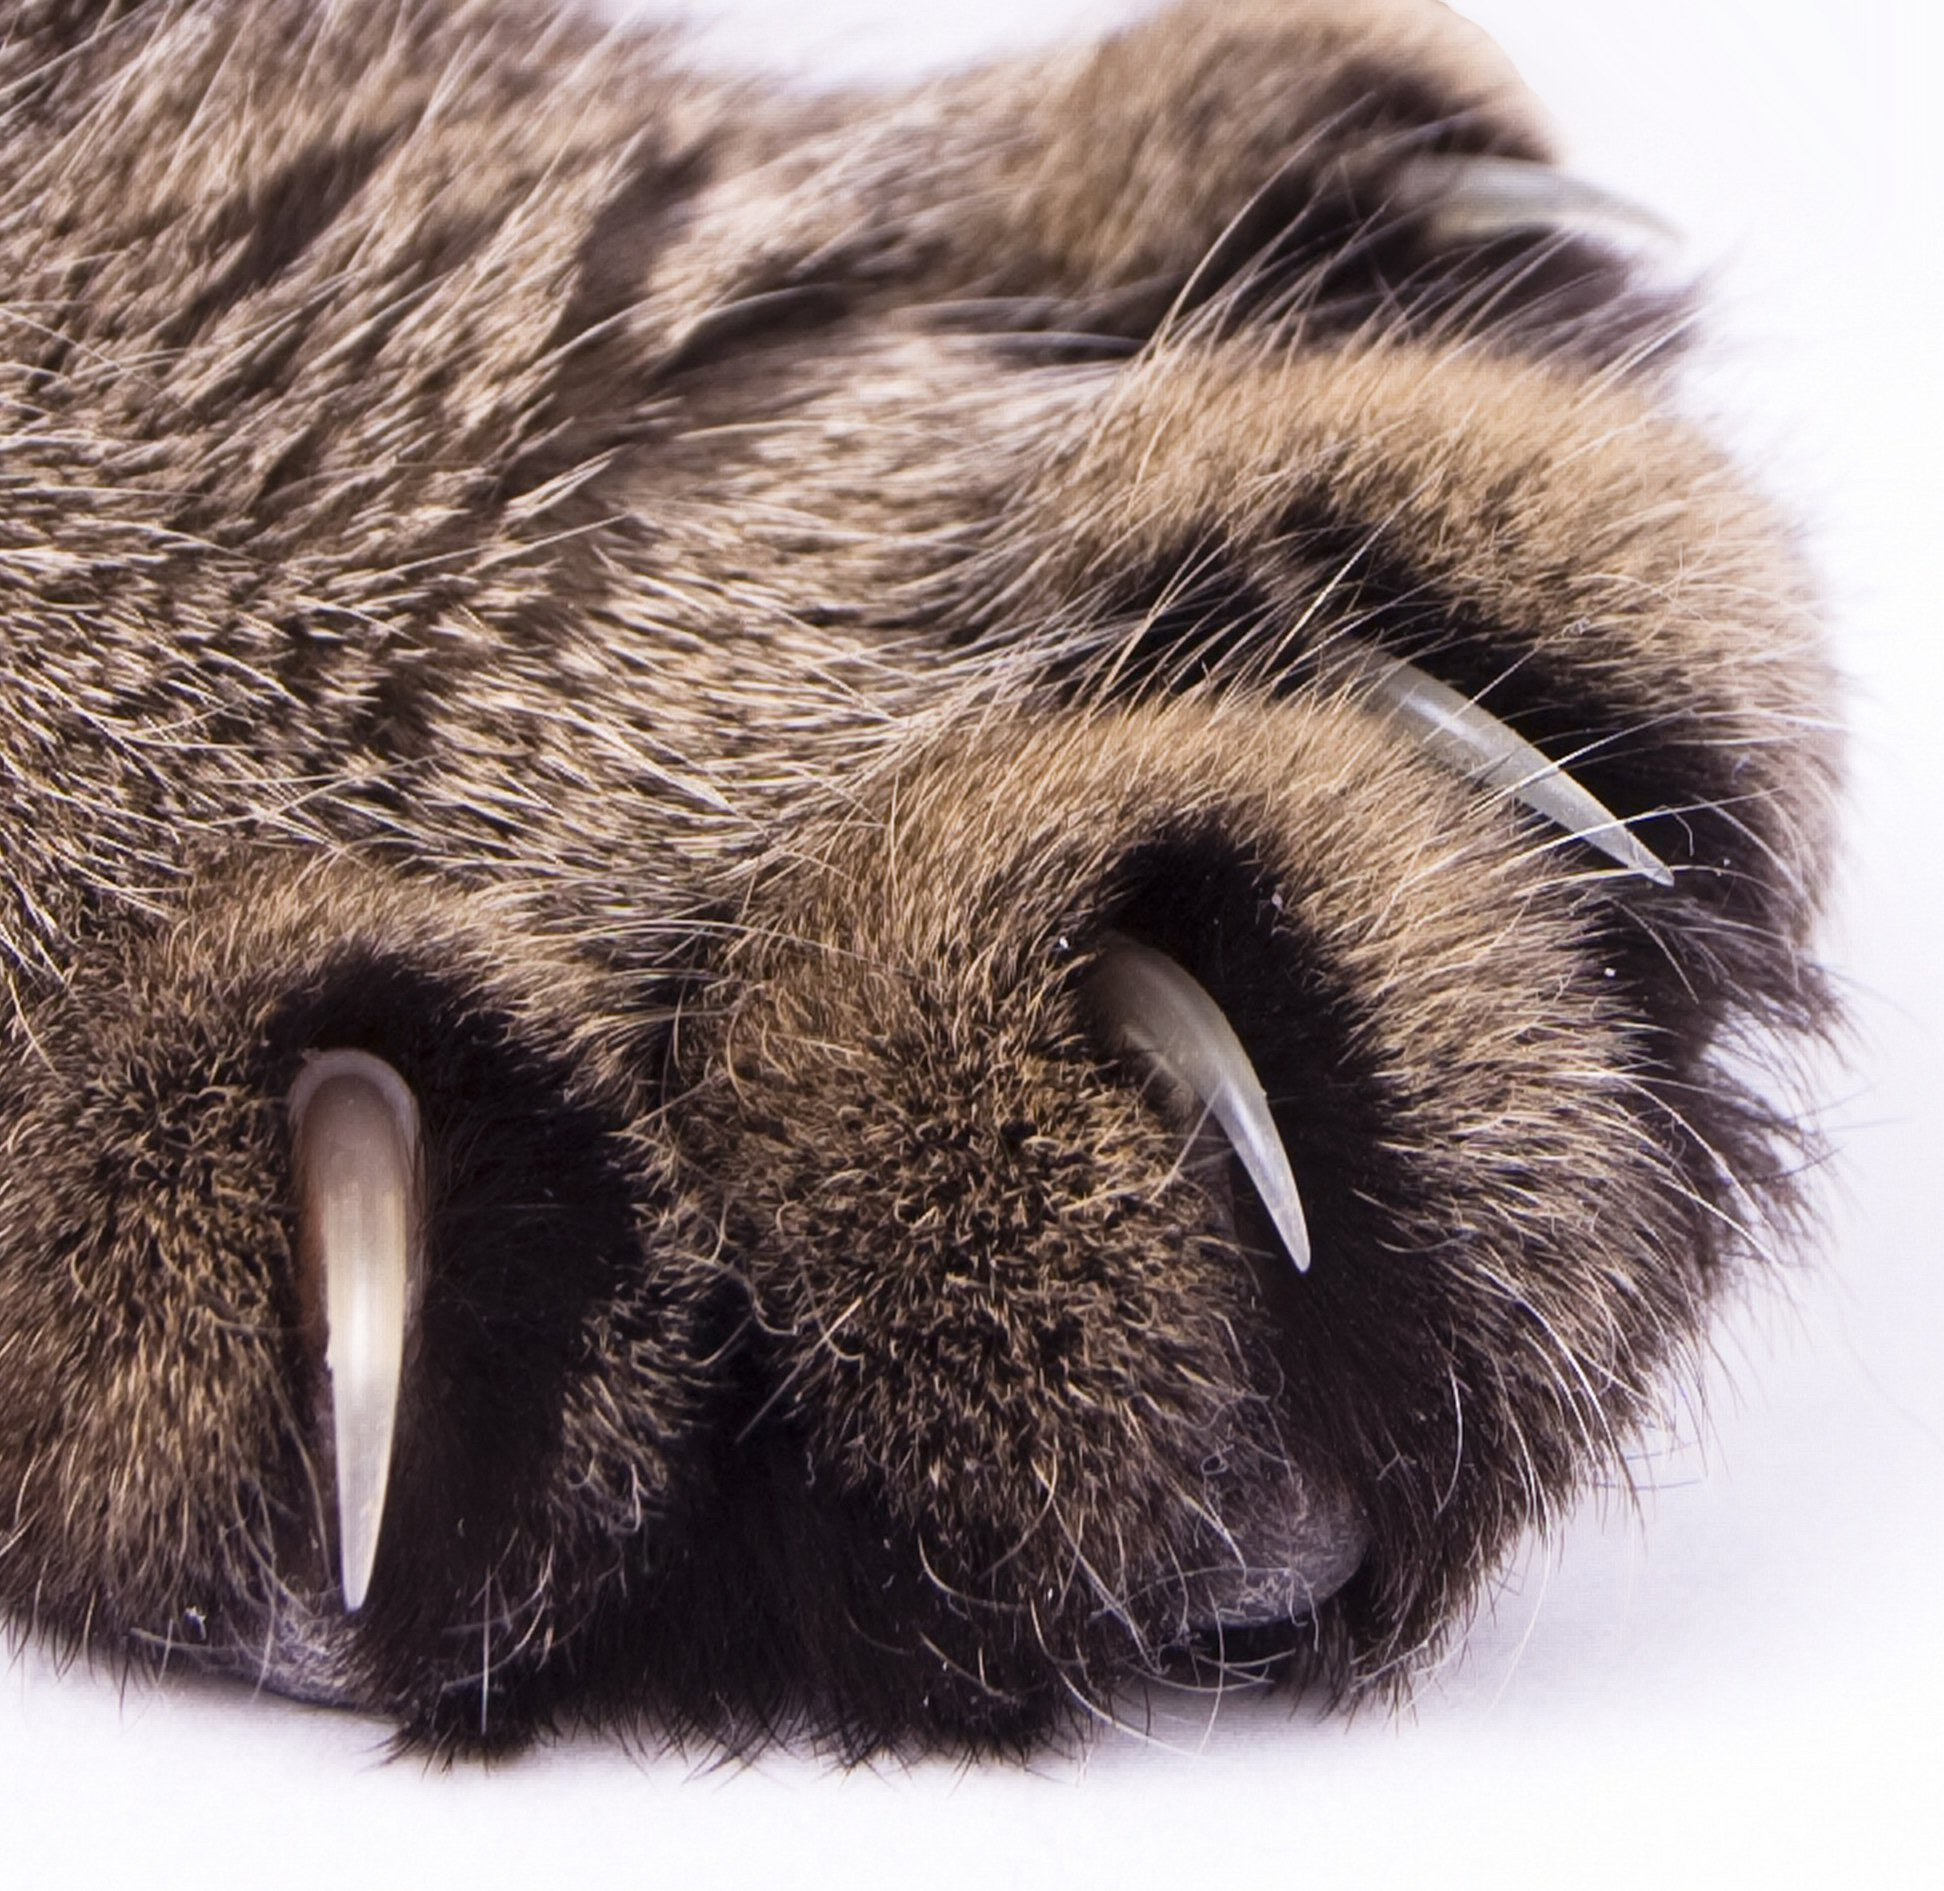 pictures of cat claws